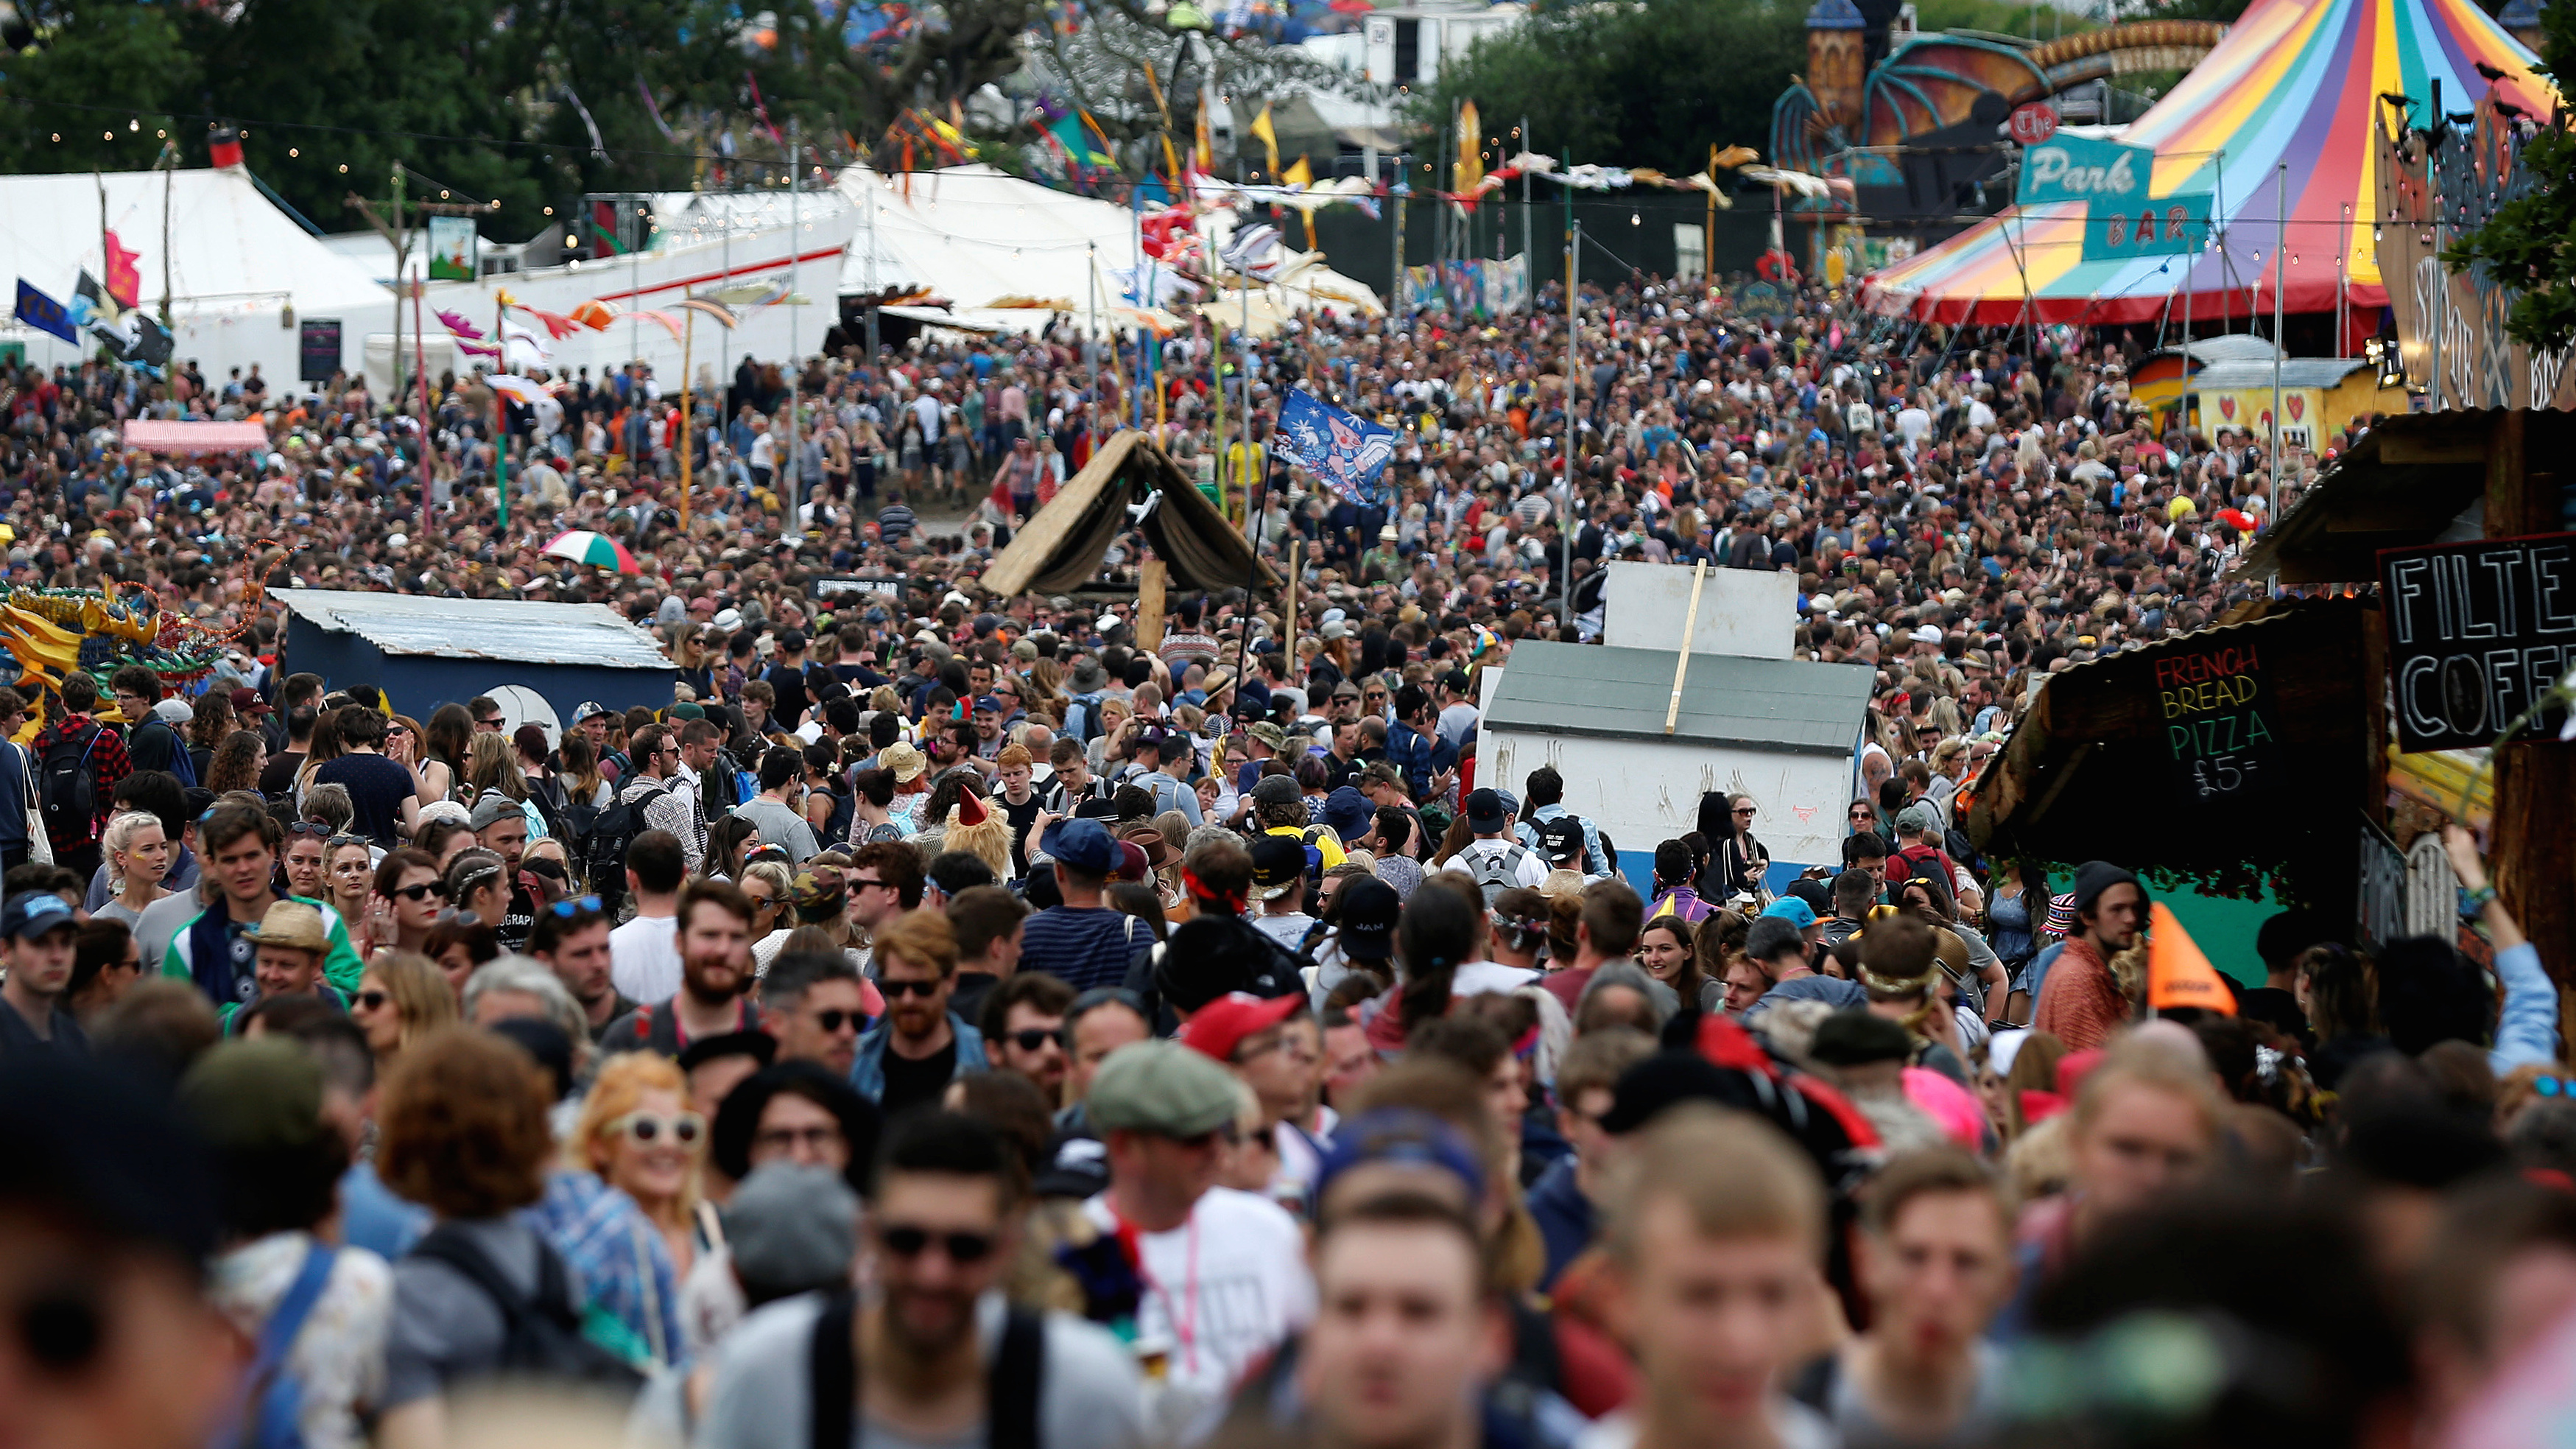 Revellers walk near The Park stage during the Glastonbury Festival at Worthy Farm in Somerset